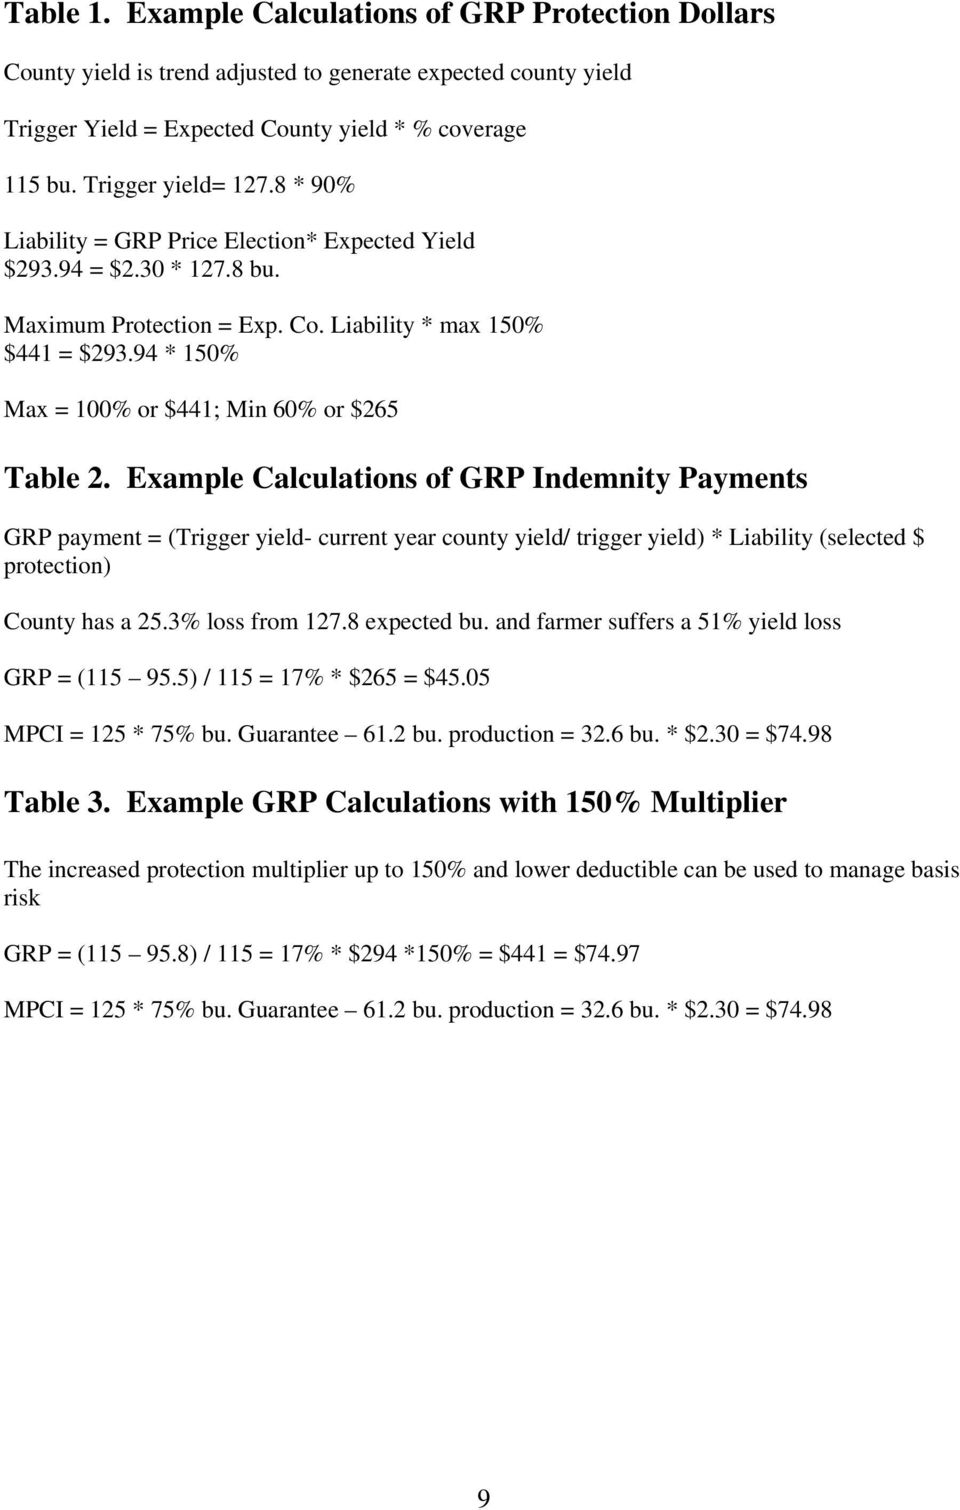 Example Calculations of GRP Indemnity Payments GRP payment = (Trigger yield- current year county yield/ trigger yield) * Liability (selected $ protection) County has a 25.3% loss from 127.